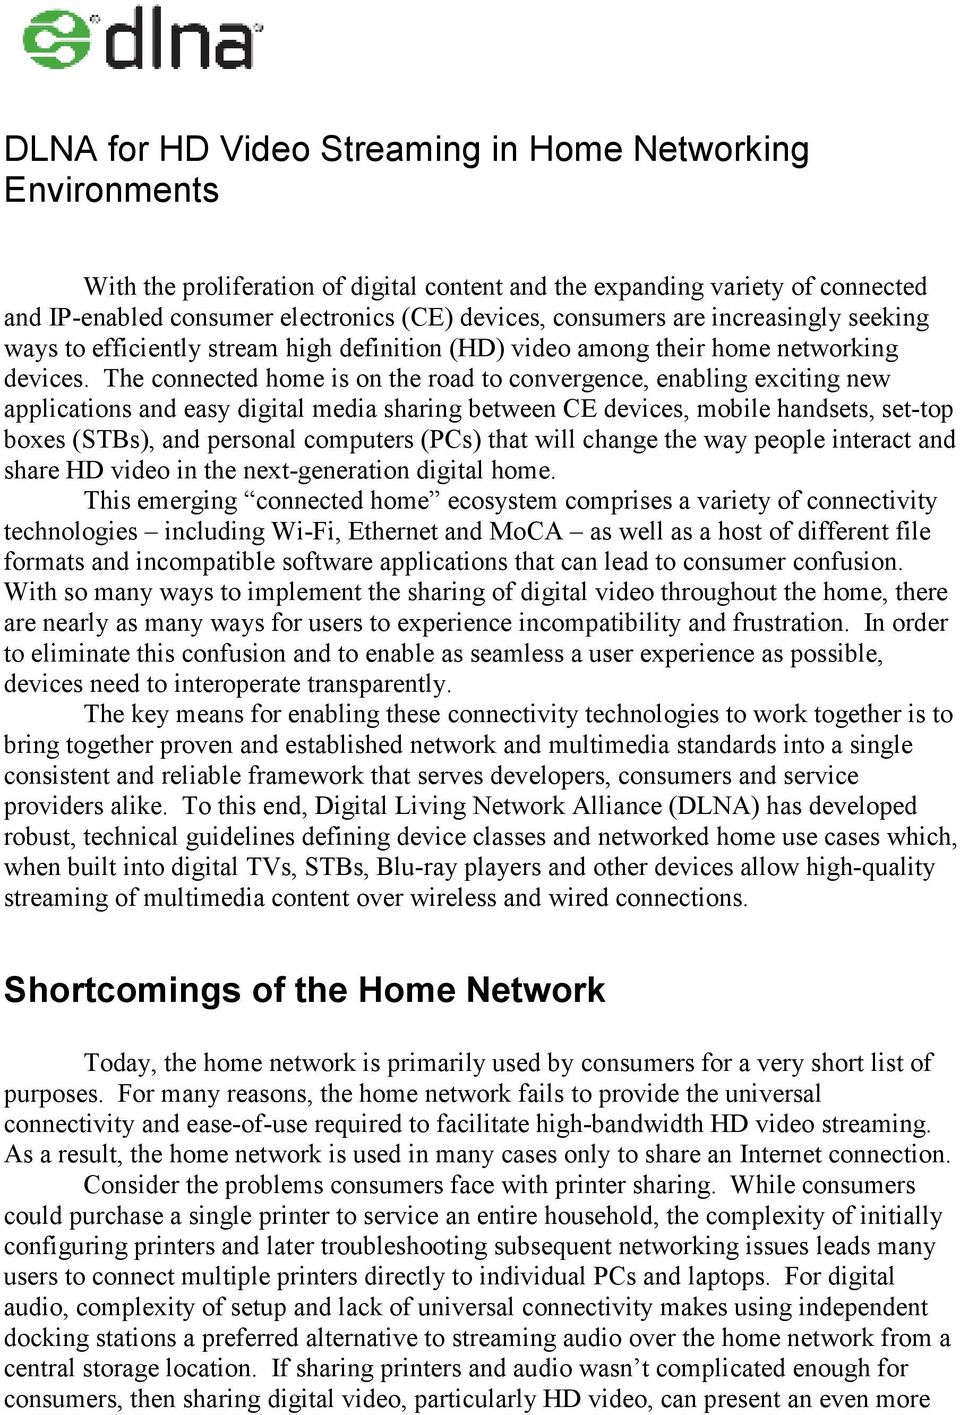 The connected home is on the road to convergence, enabling exciting new applications and easy digital media sharing between CE devices, mobile handsets, set-top boxes (STBs), and personal computers